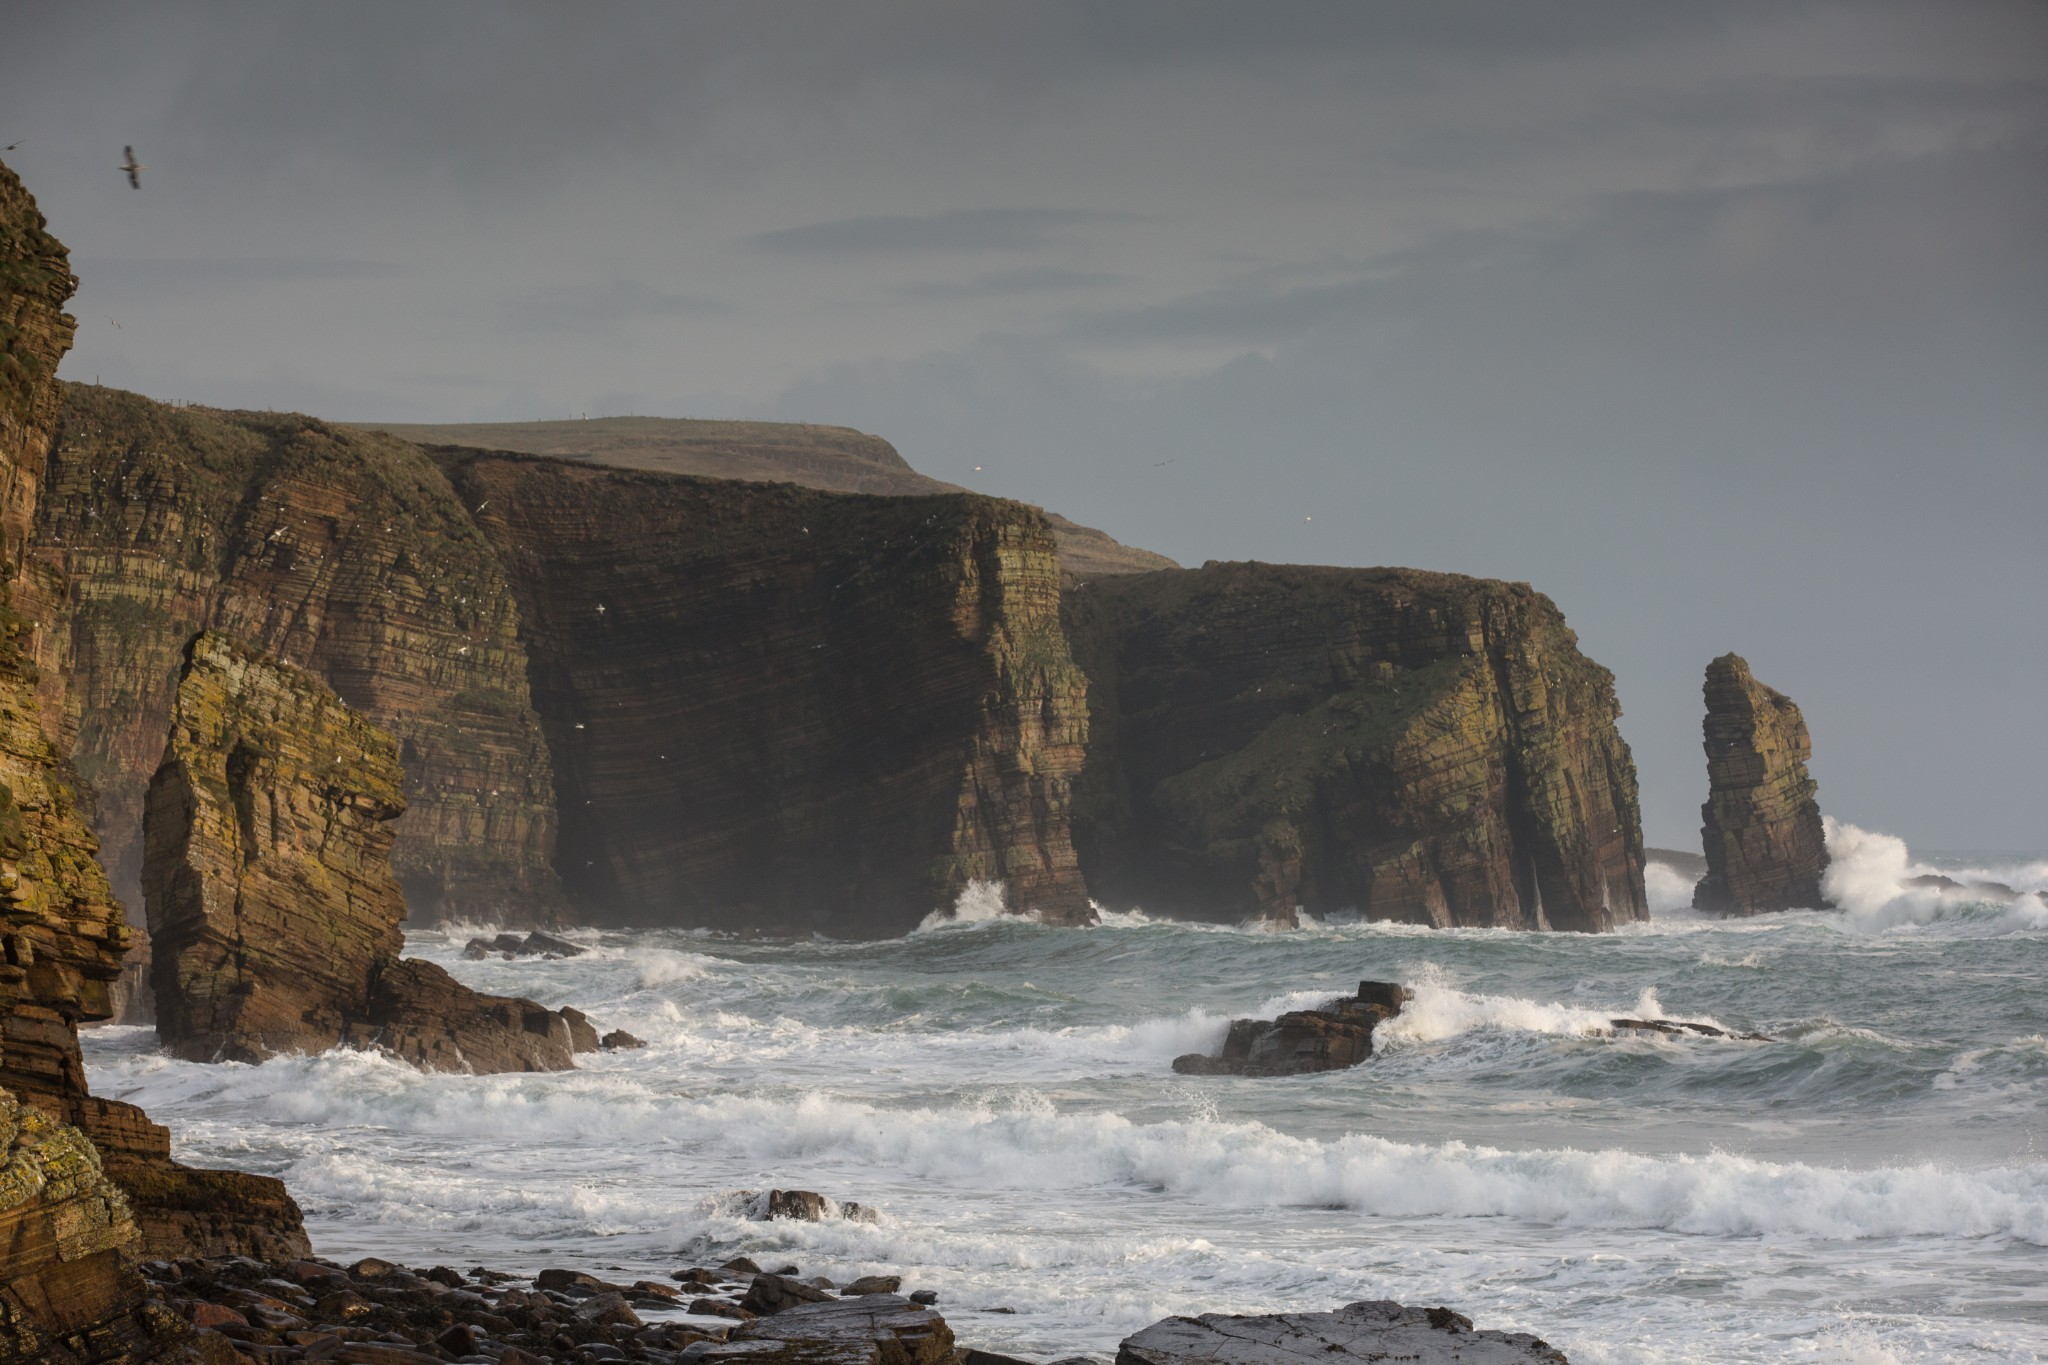 The coastline at Hesta Head, Orkney